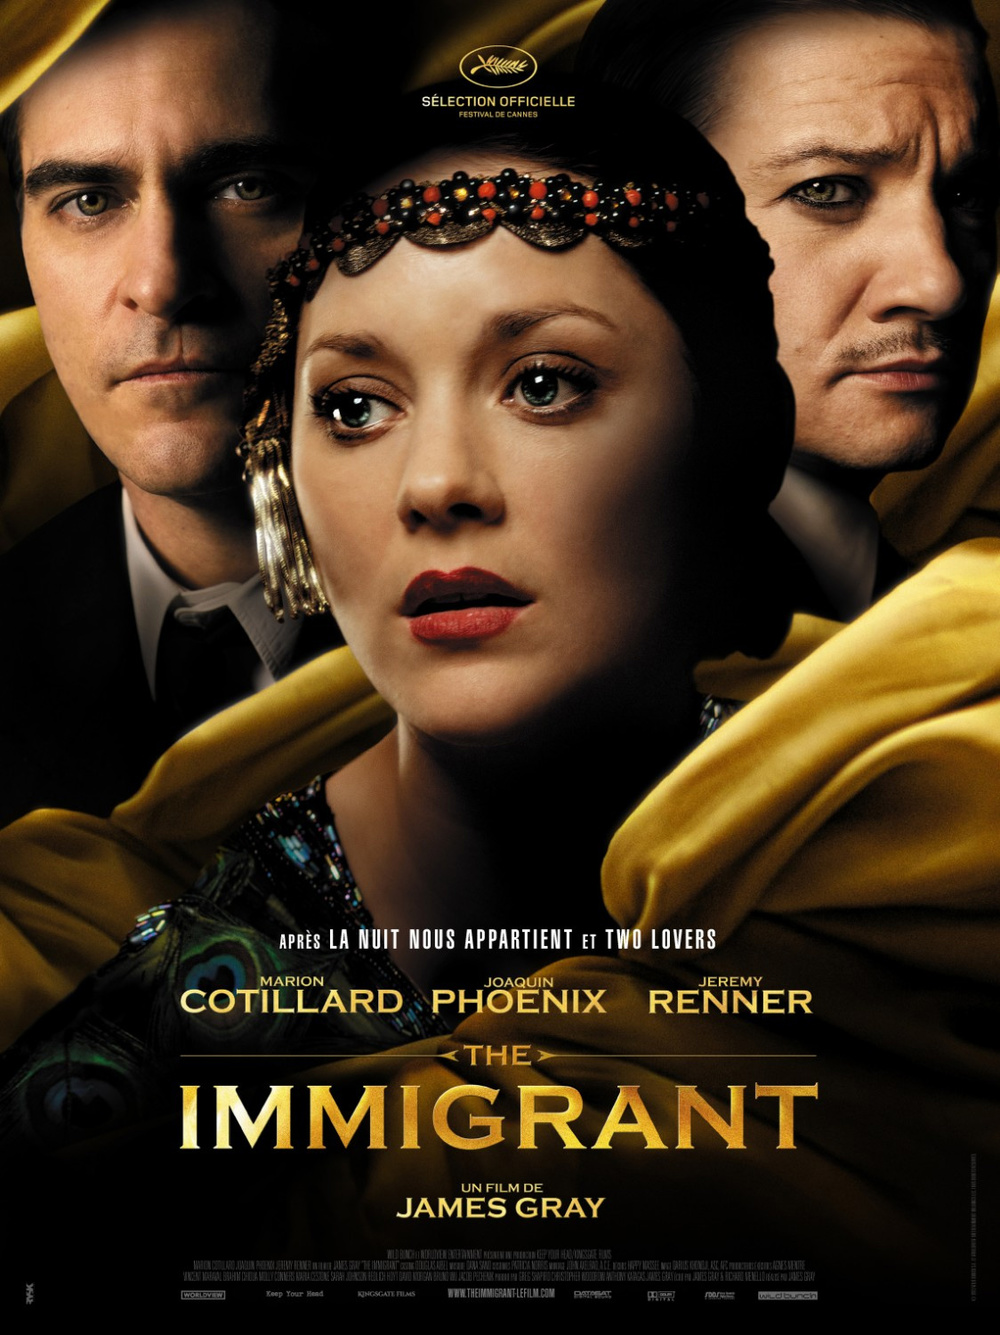 trailer-for-the-immigrant-with-joaquin-phoenix-and-jeremy-renner.jpg